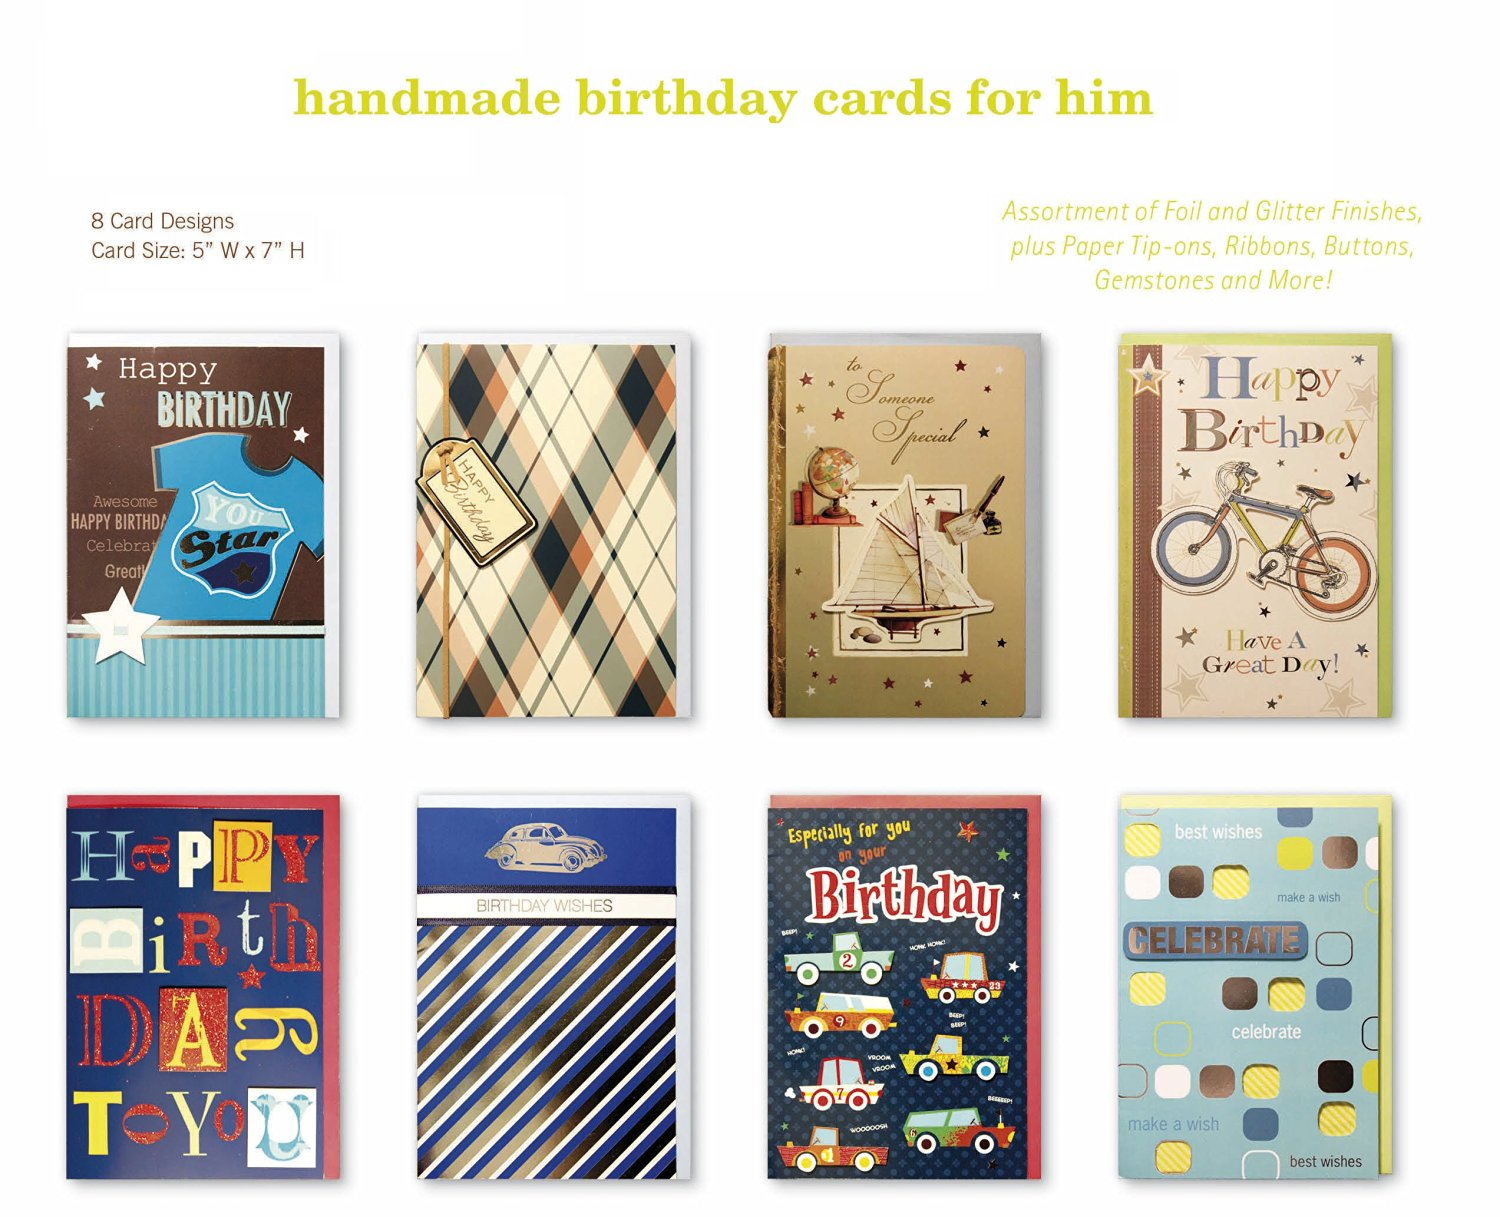 Assorted Handmade Embellished Birthday Cards Box Set 8 Pack Card Assortment In Bulk For